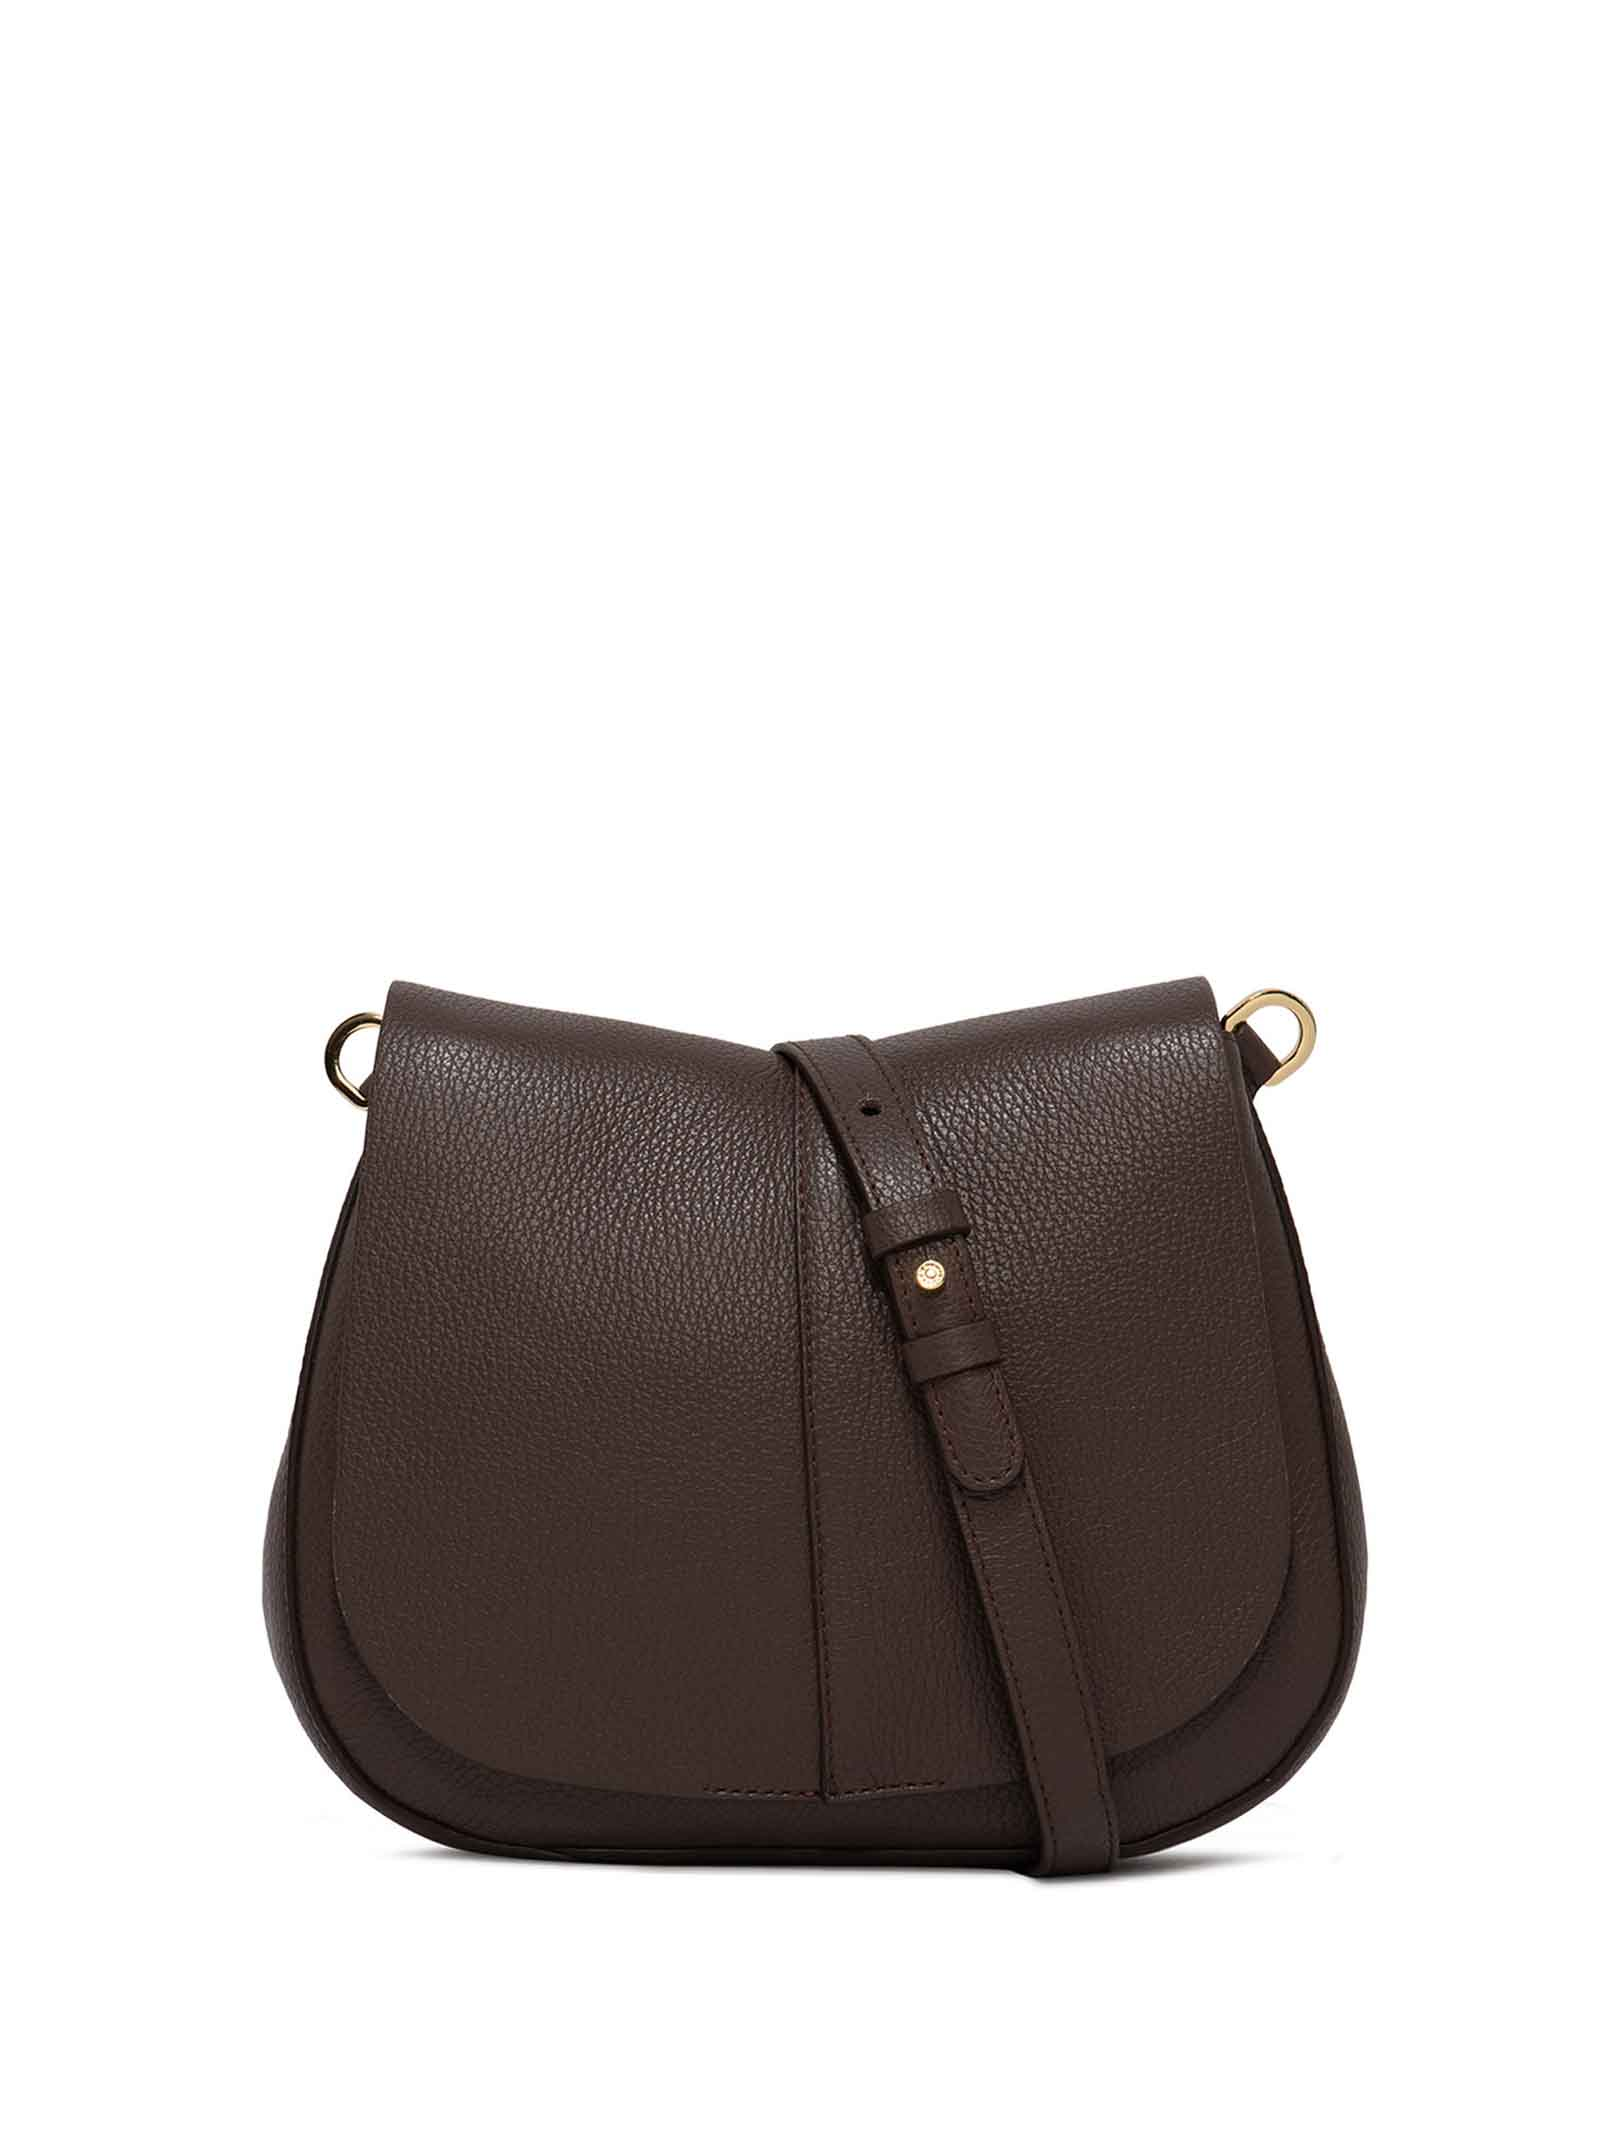 Women's Cross-body Bag Helena Round in Taupe Hammered Leather with Flap and Double Adjustable and Detachable Cross-body Strap Gianni Chiarini   Bags and backpacks   BS6036442